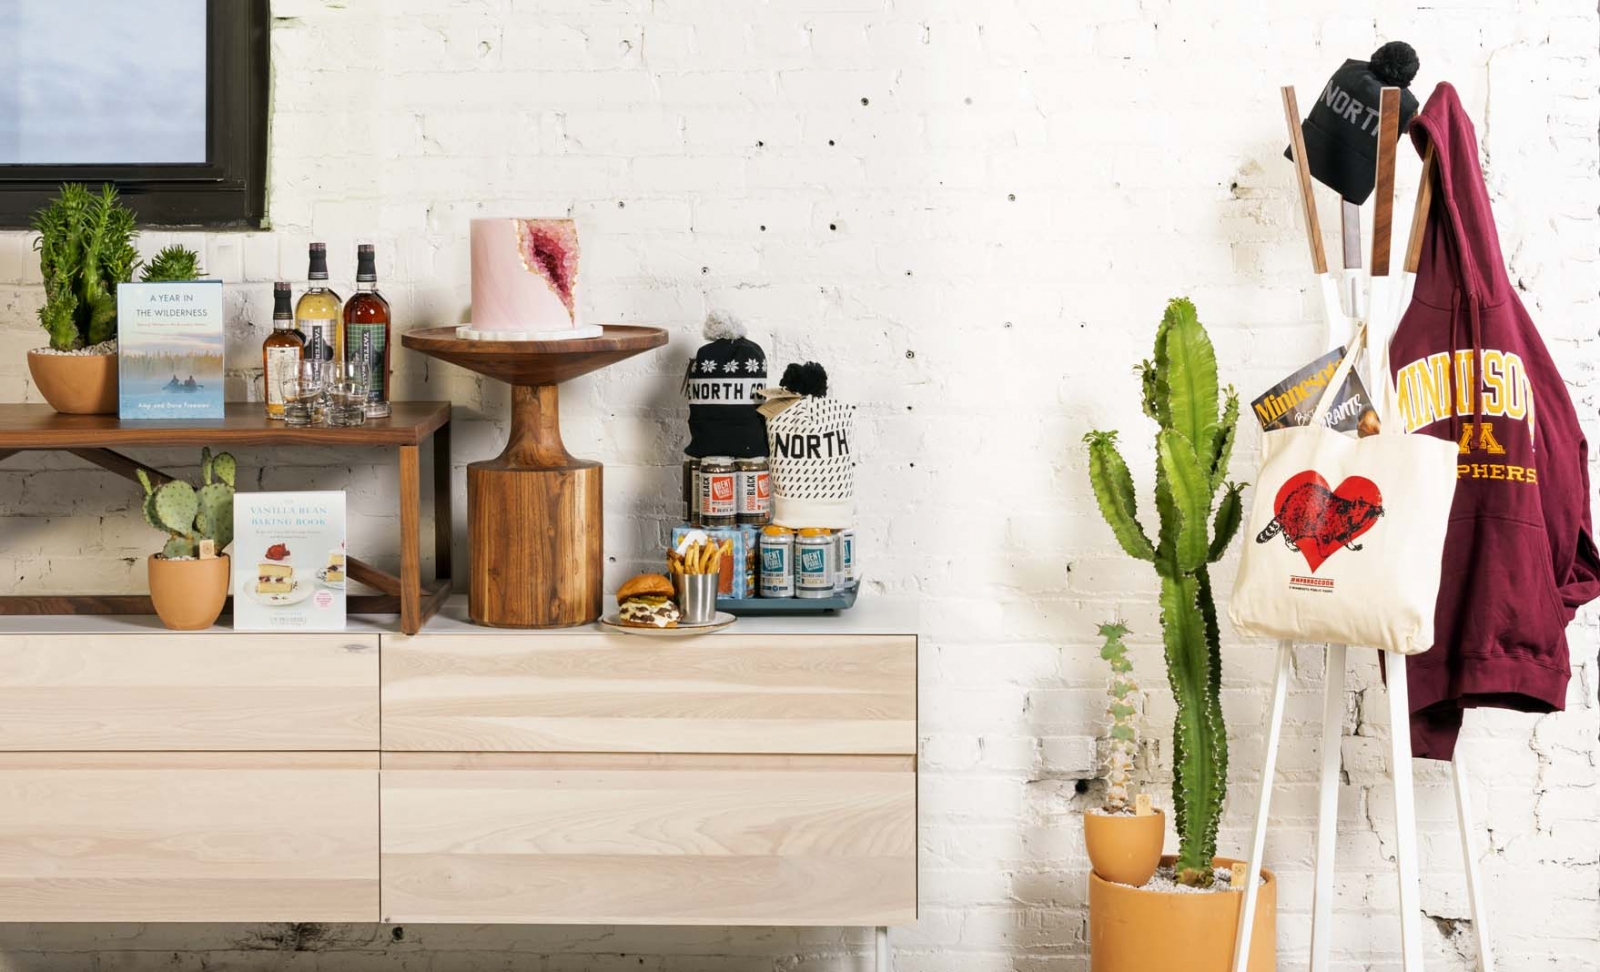 A room with a shelf full of items next to a potted cactus and a sweatshirt and bag hanging from a hanger.